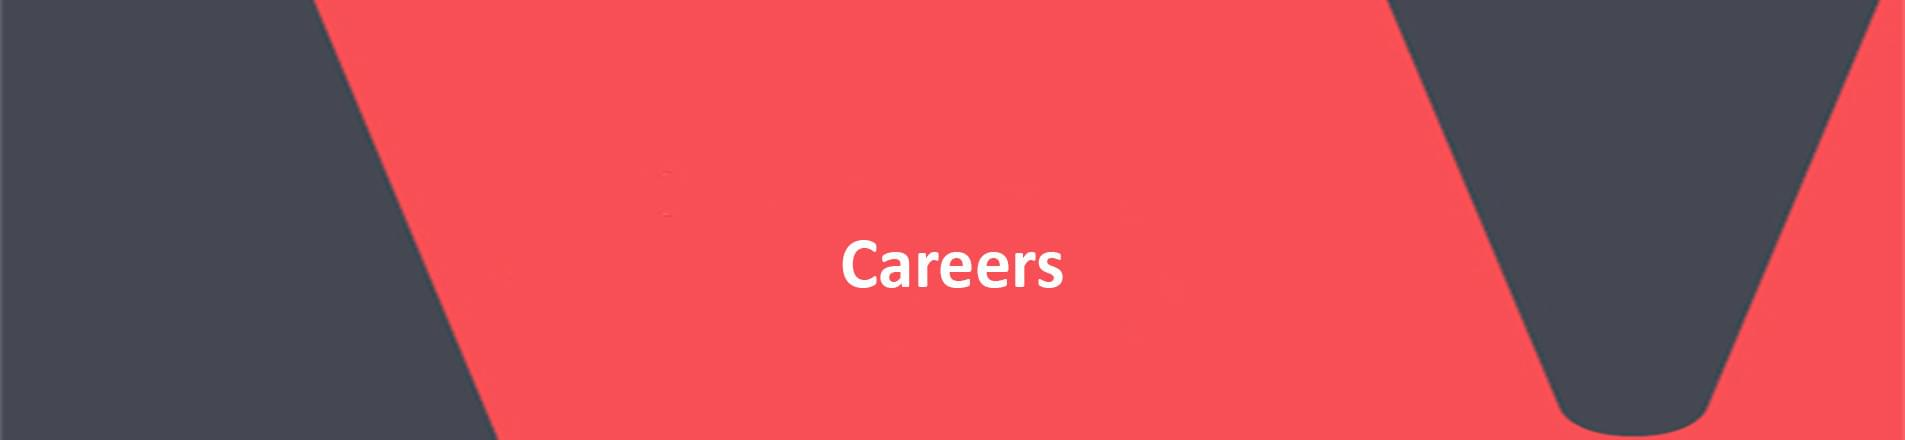 The word careers on red VERCIDA  branded background